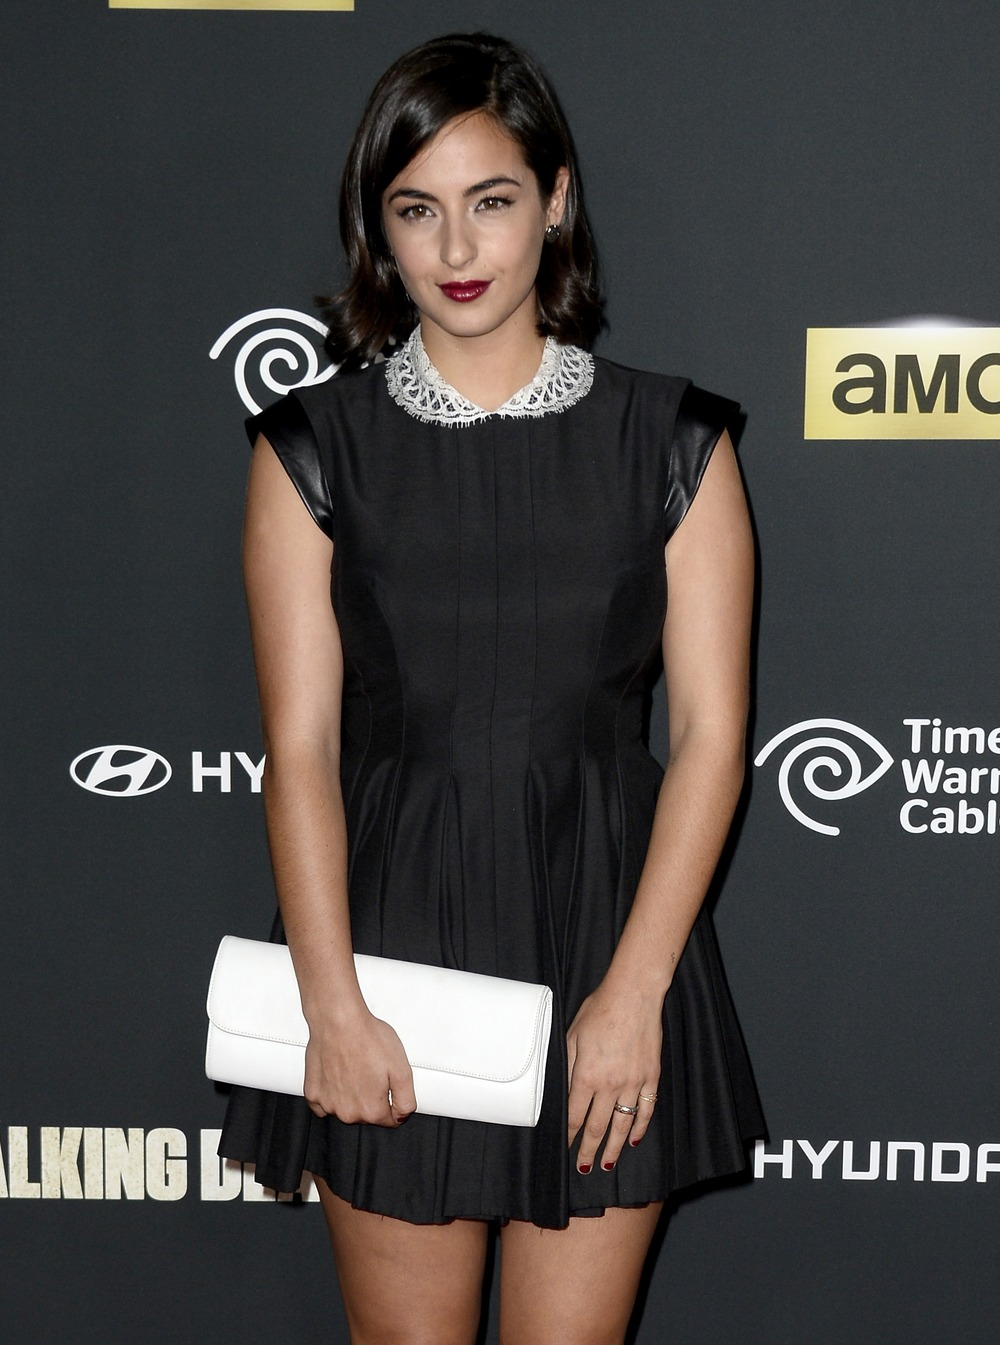 Alanna Masterson hot - The Walking Dead